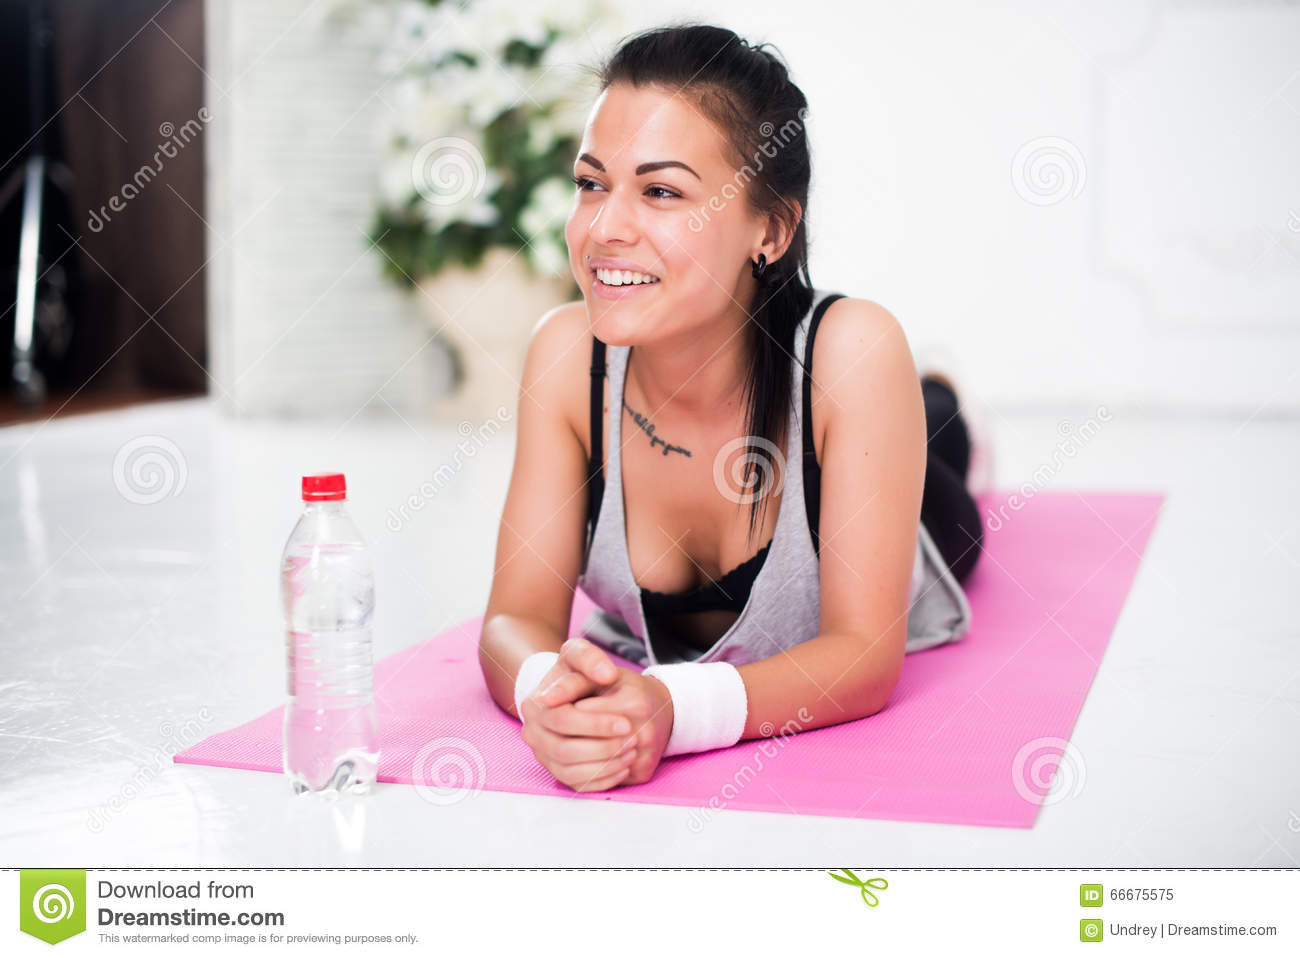 Young woman relaxing after workout at home lying on yoga mat concept healthy lifestyle, training, diet